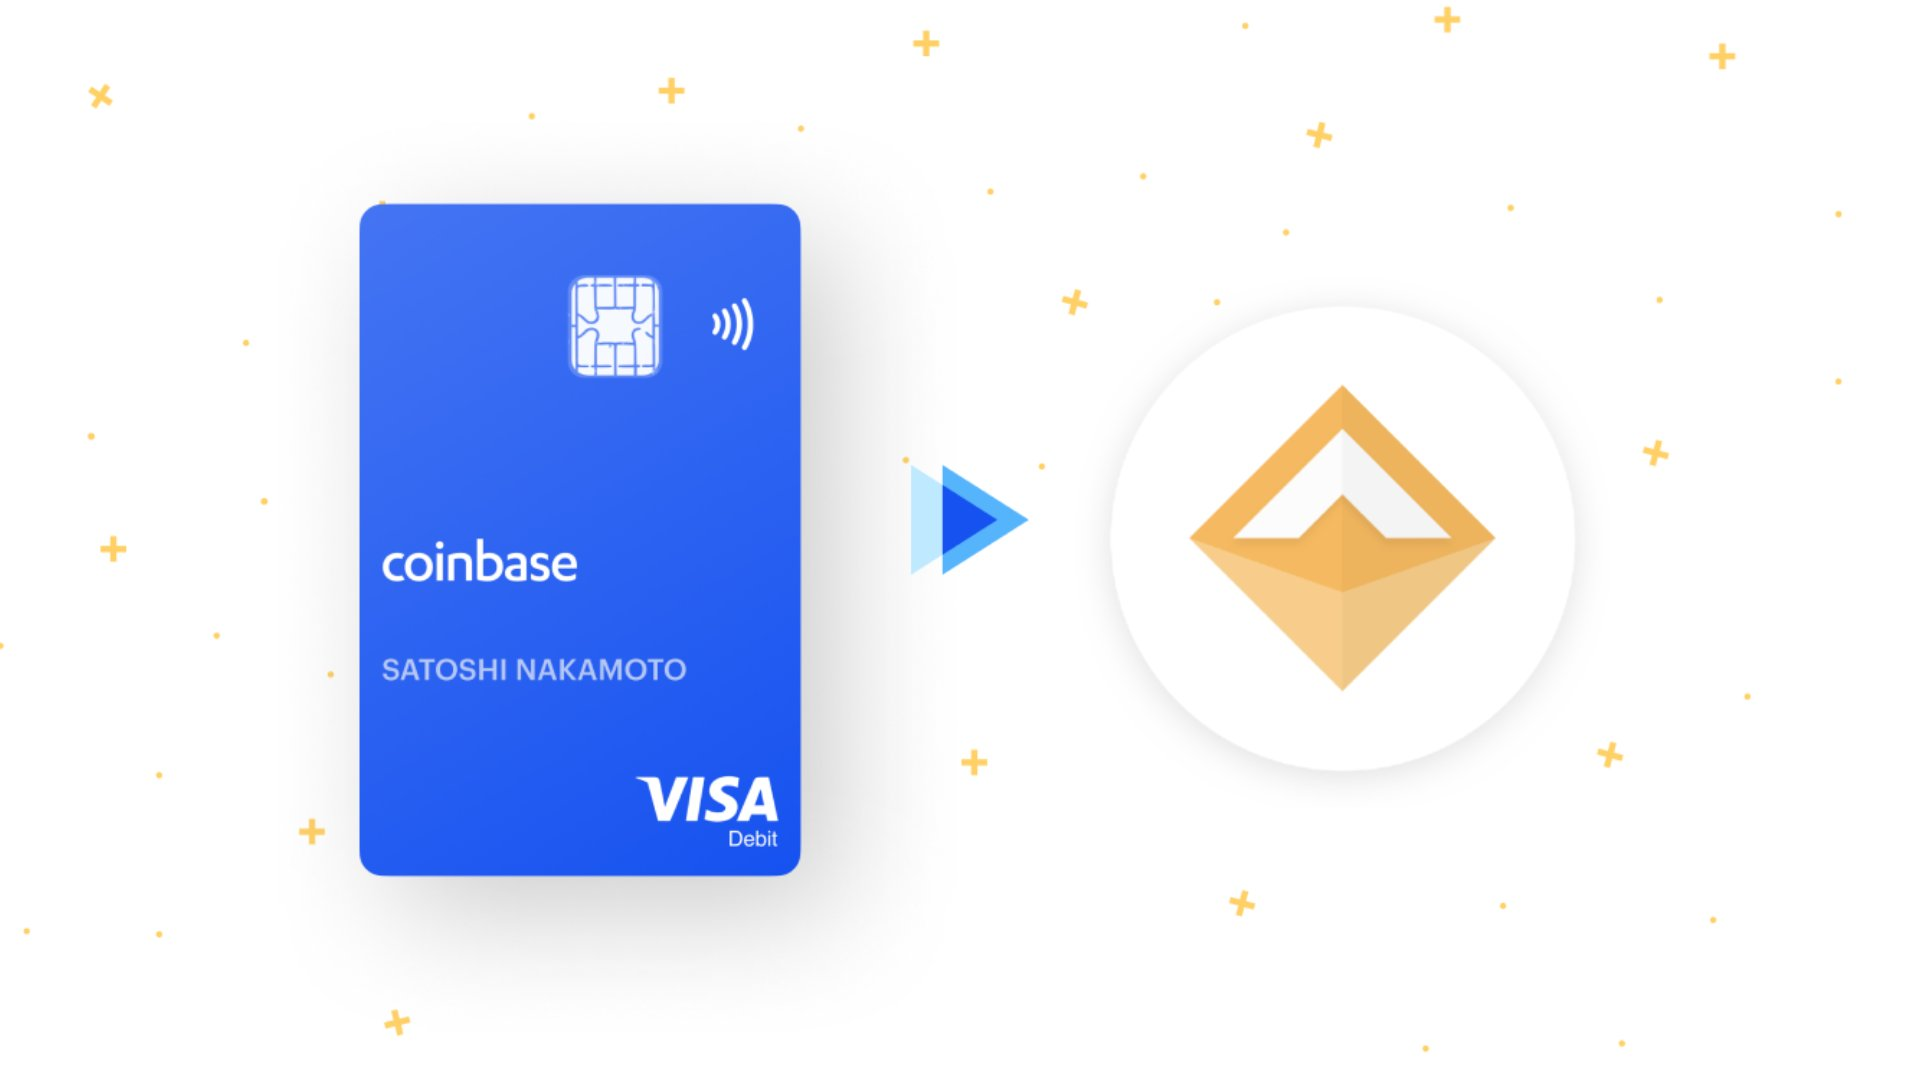 Coinbase Card adds support to DAI